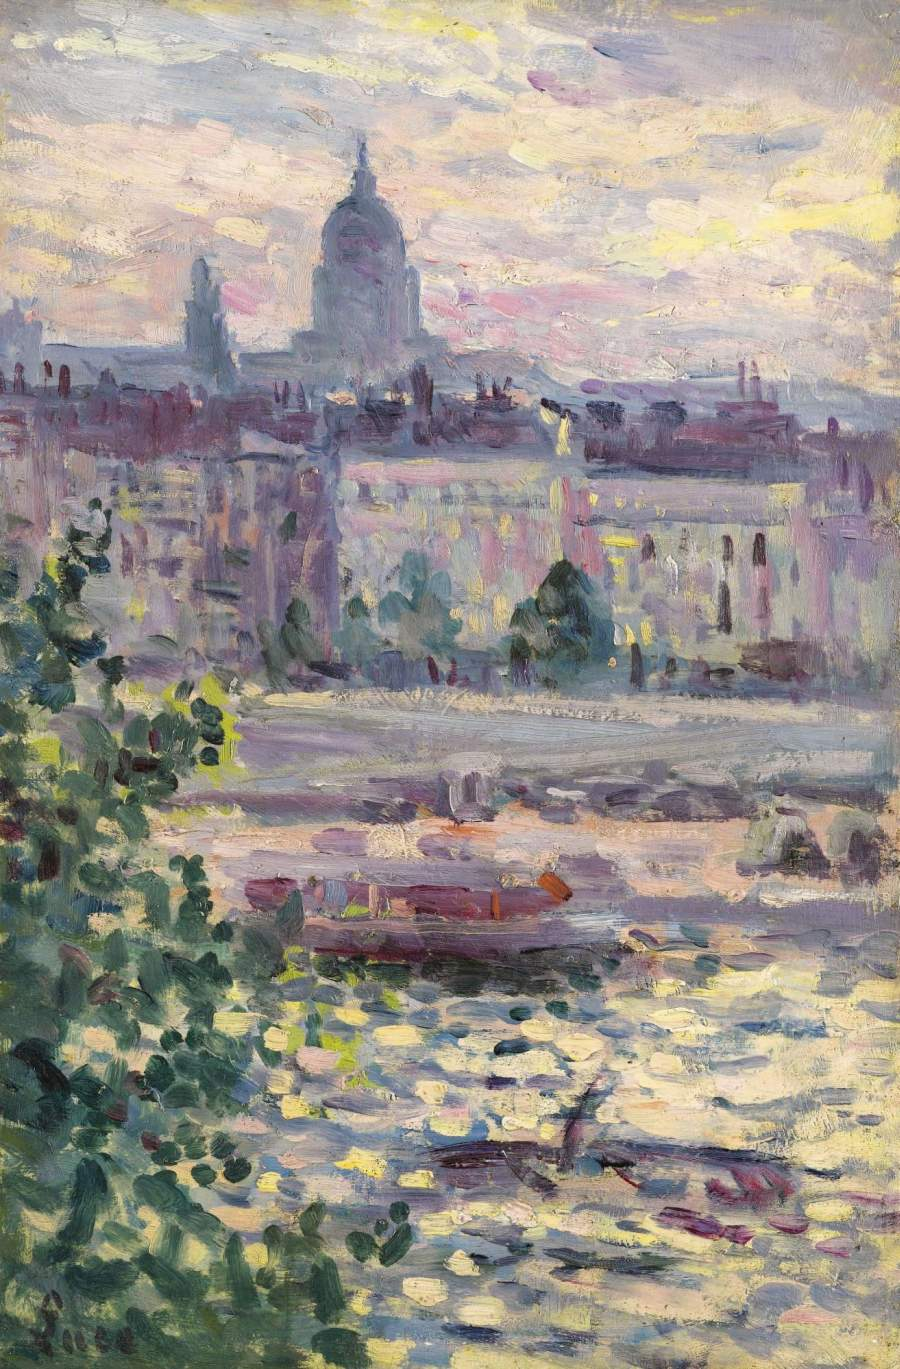 Paris Boards of the Seine the House of Invalids 1910 | Maximilien Luce | oil painting